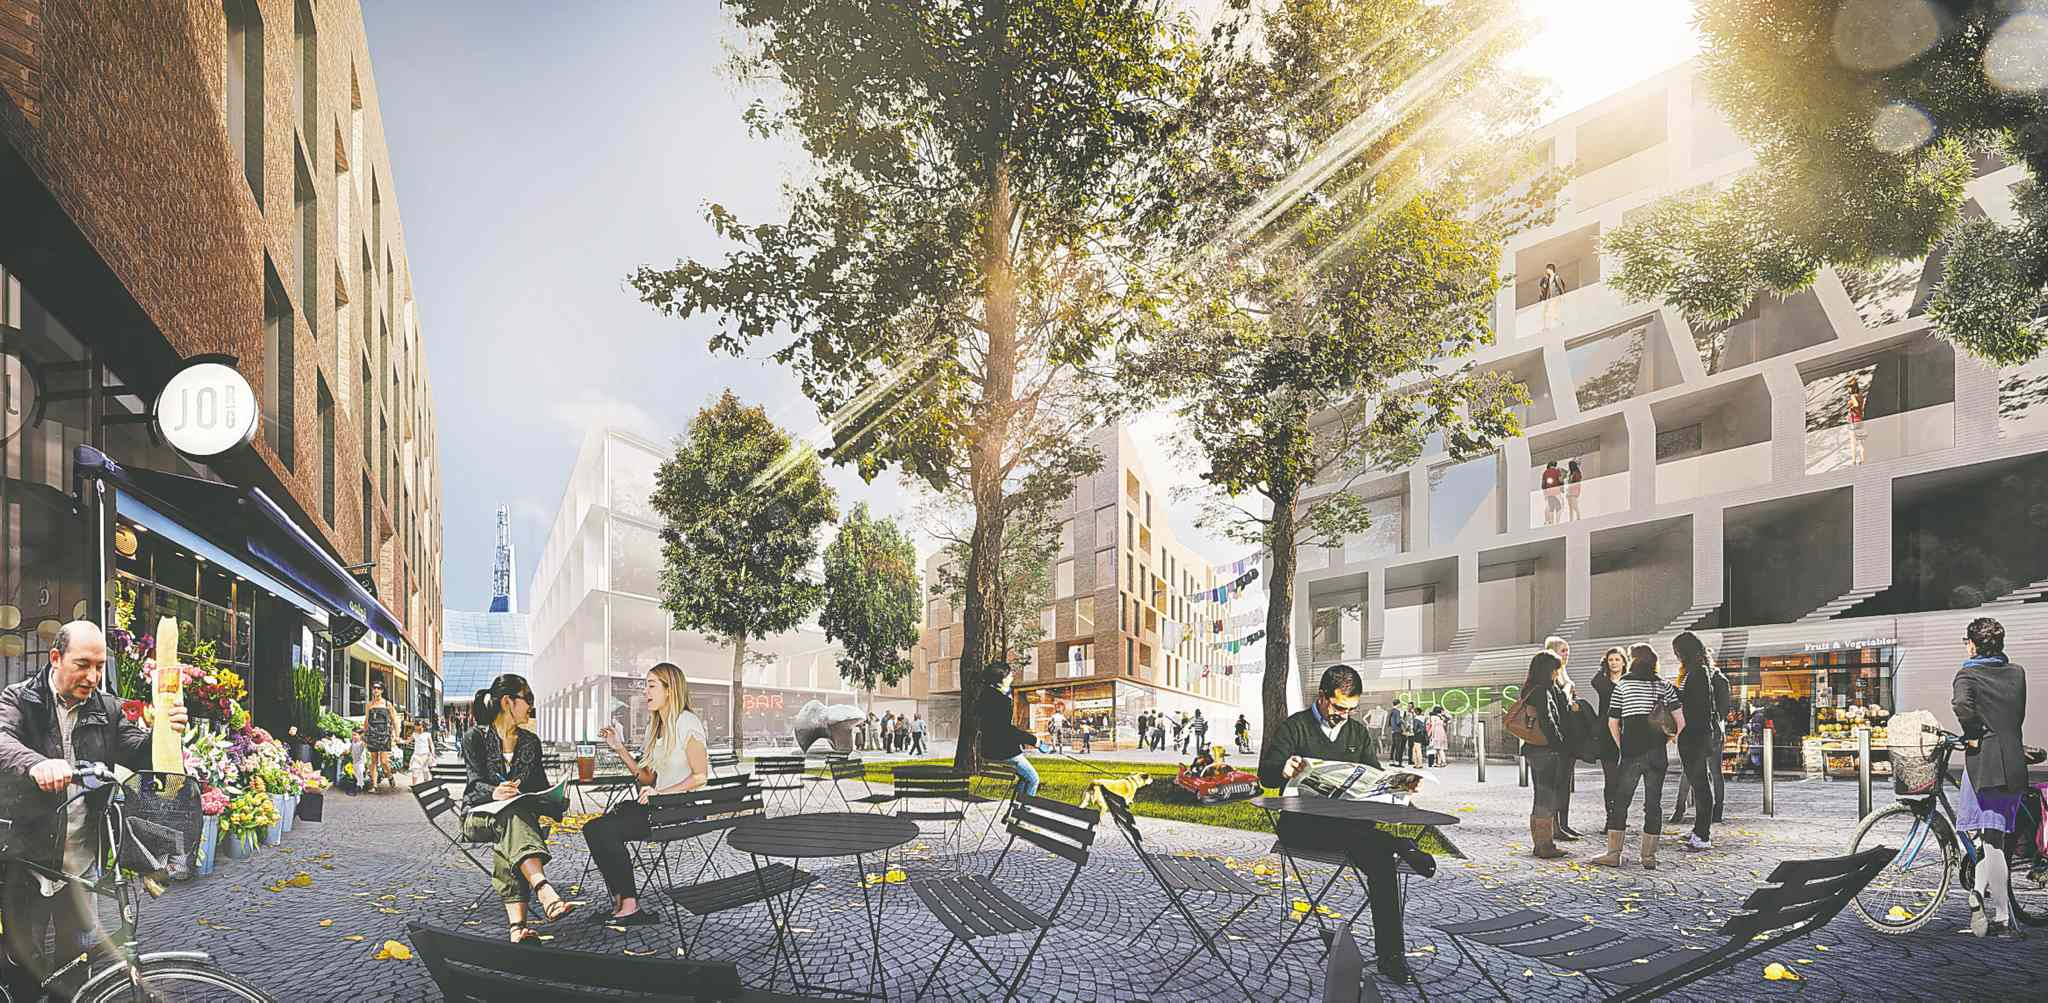 An artist's rendering of the proposed development of The Forks' Railside lands in the heart of Winnipeg. (Submitted image)